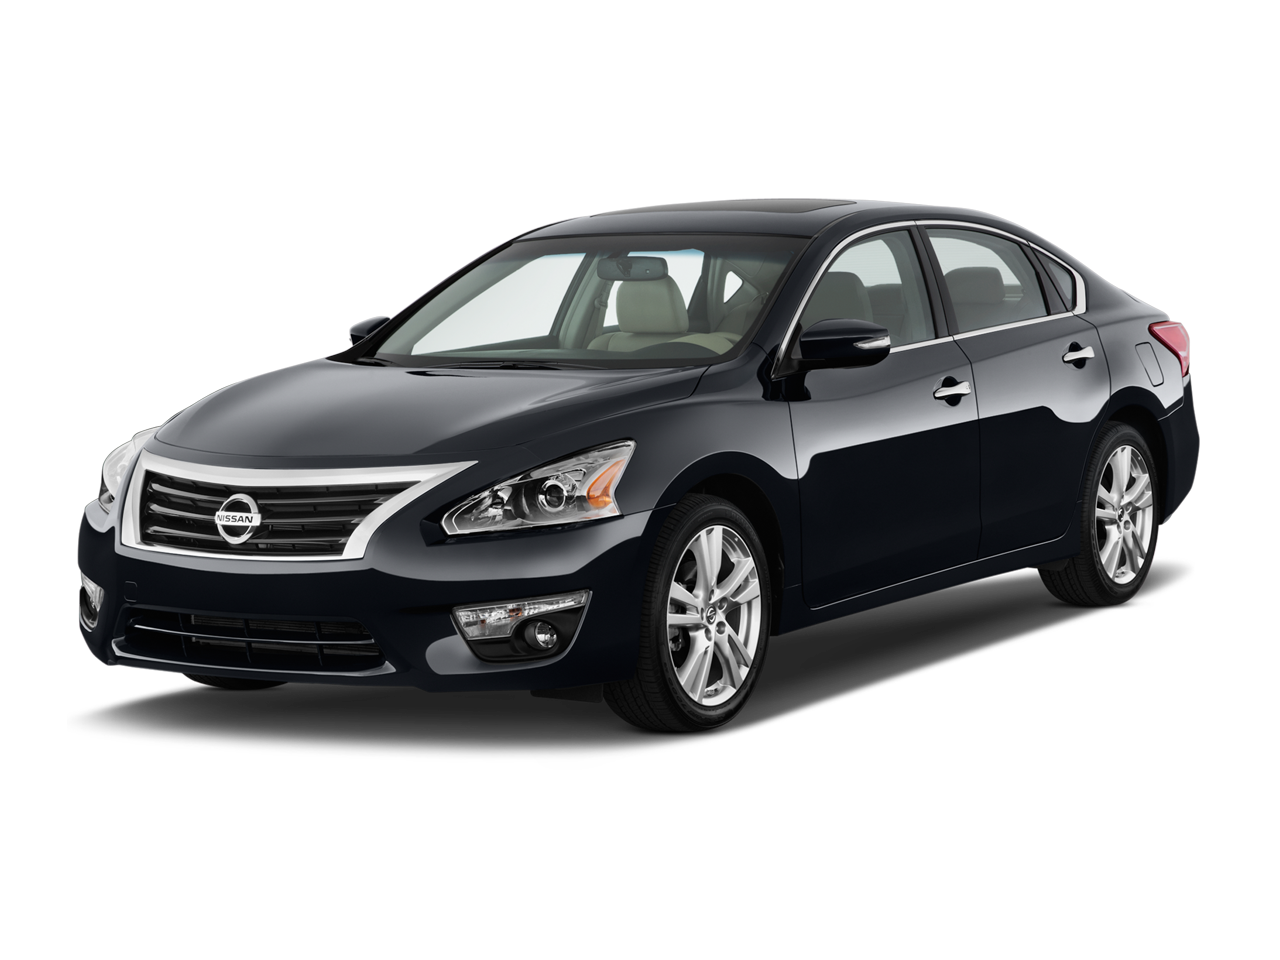 Lease A Nissan Altima Valley Hi Nissan | New Nissan dealership in Victorville, CA 92394